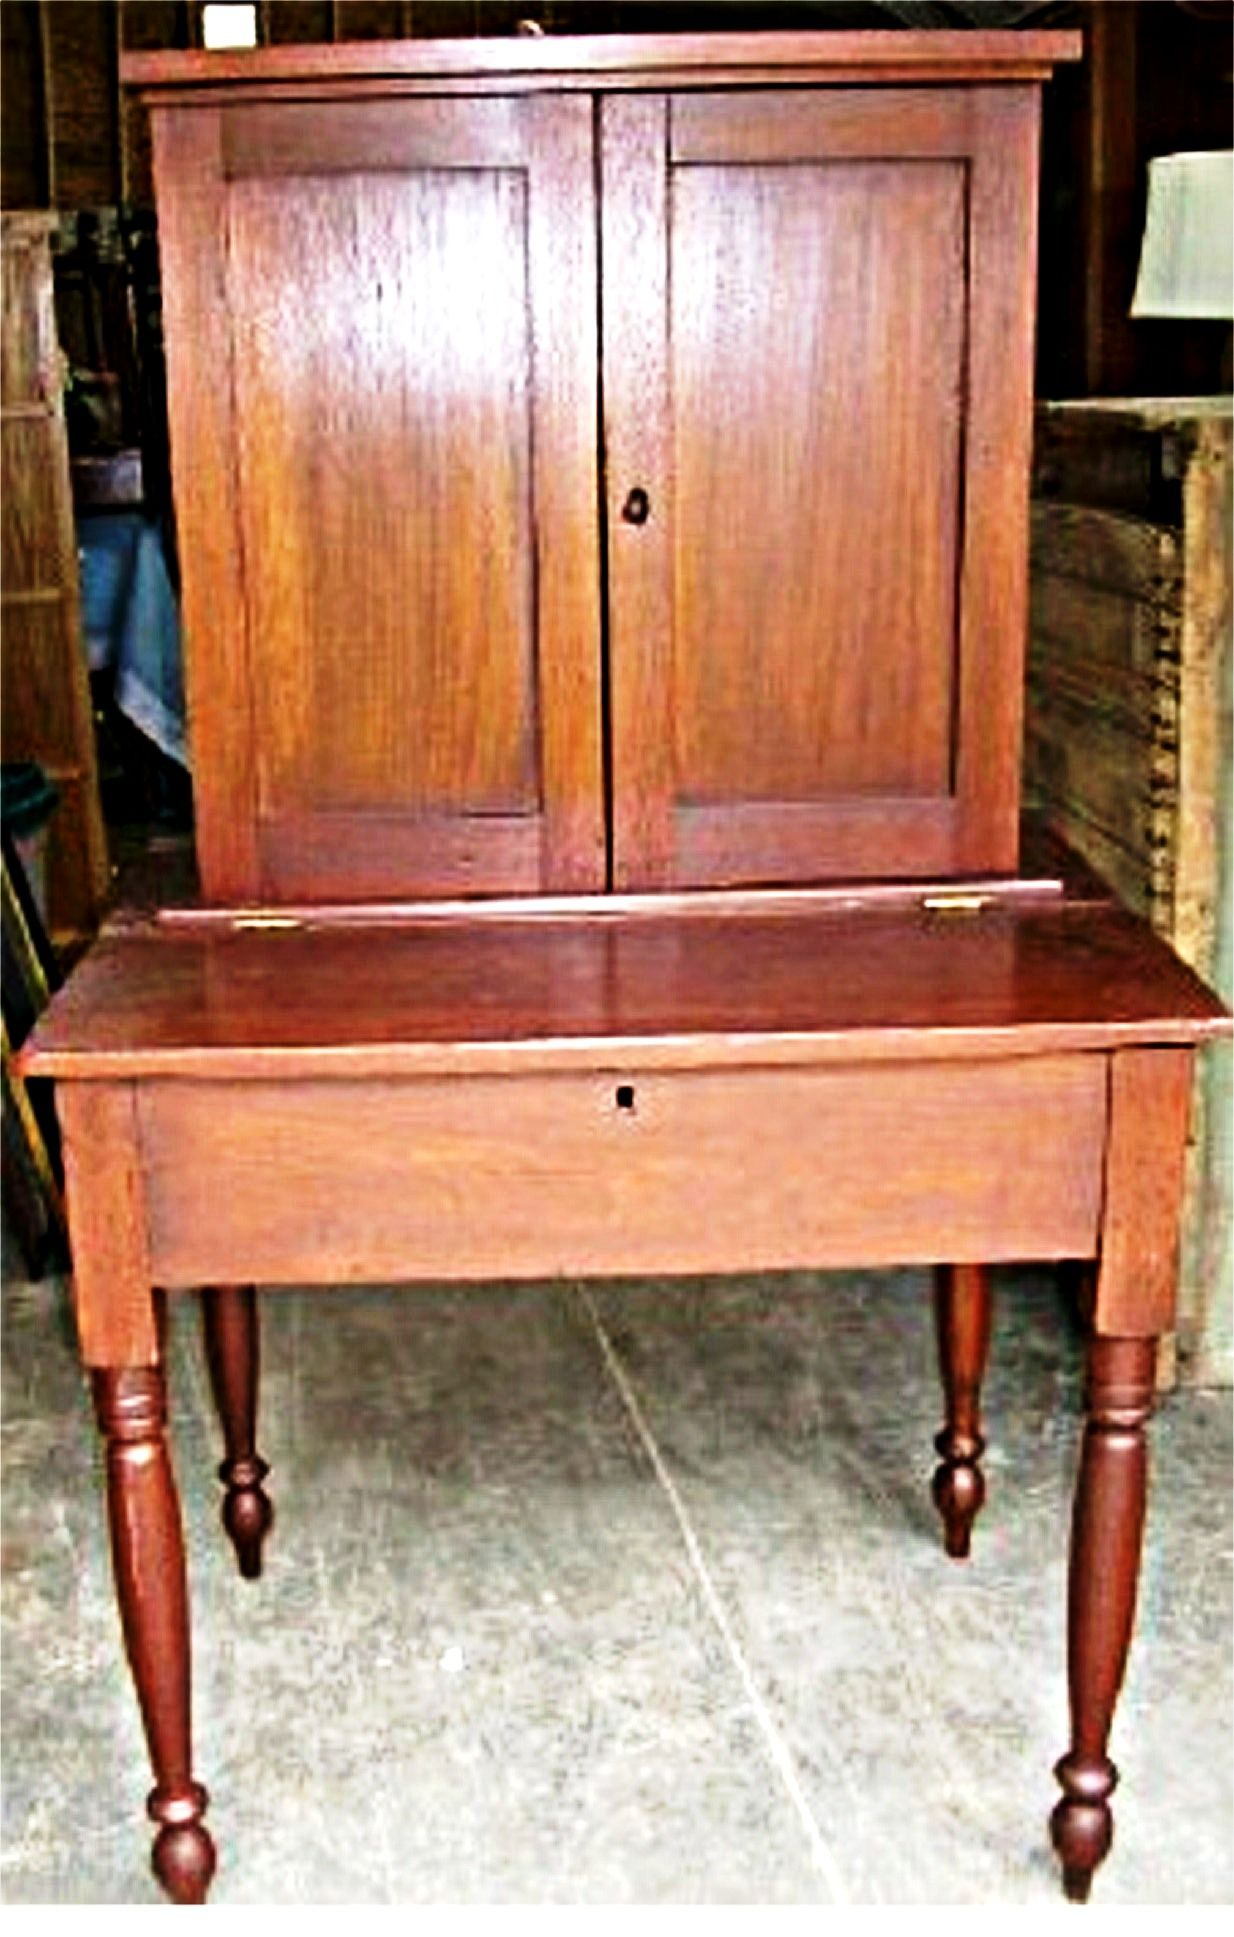 plantation-desk.jpg 1,234×1,937 pixels - Plantation-desk.jpg 1,234×1,937 Pixels Luv Antique Desks